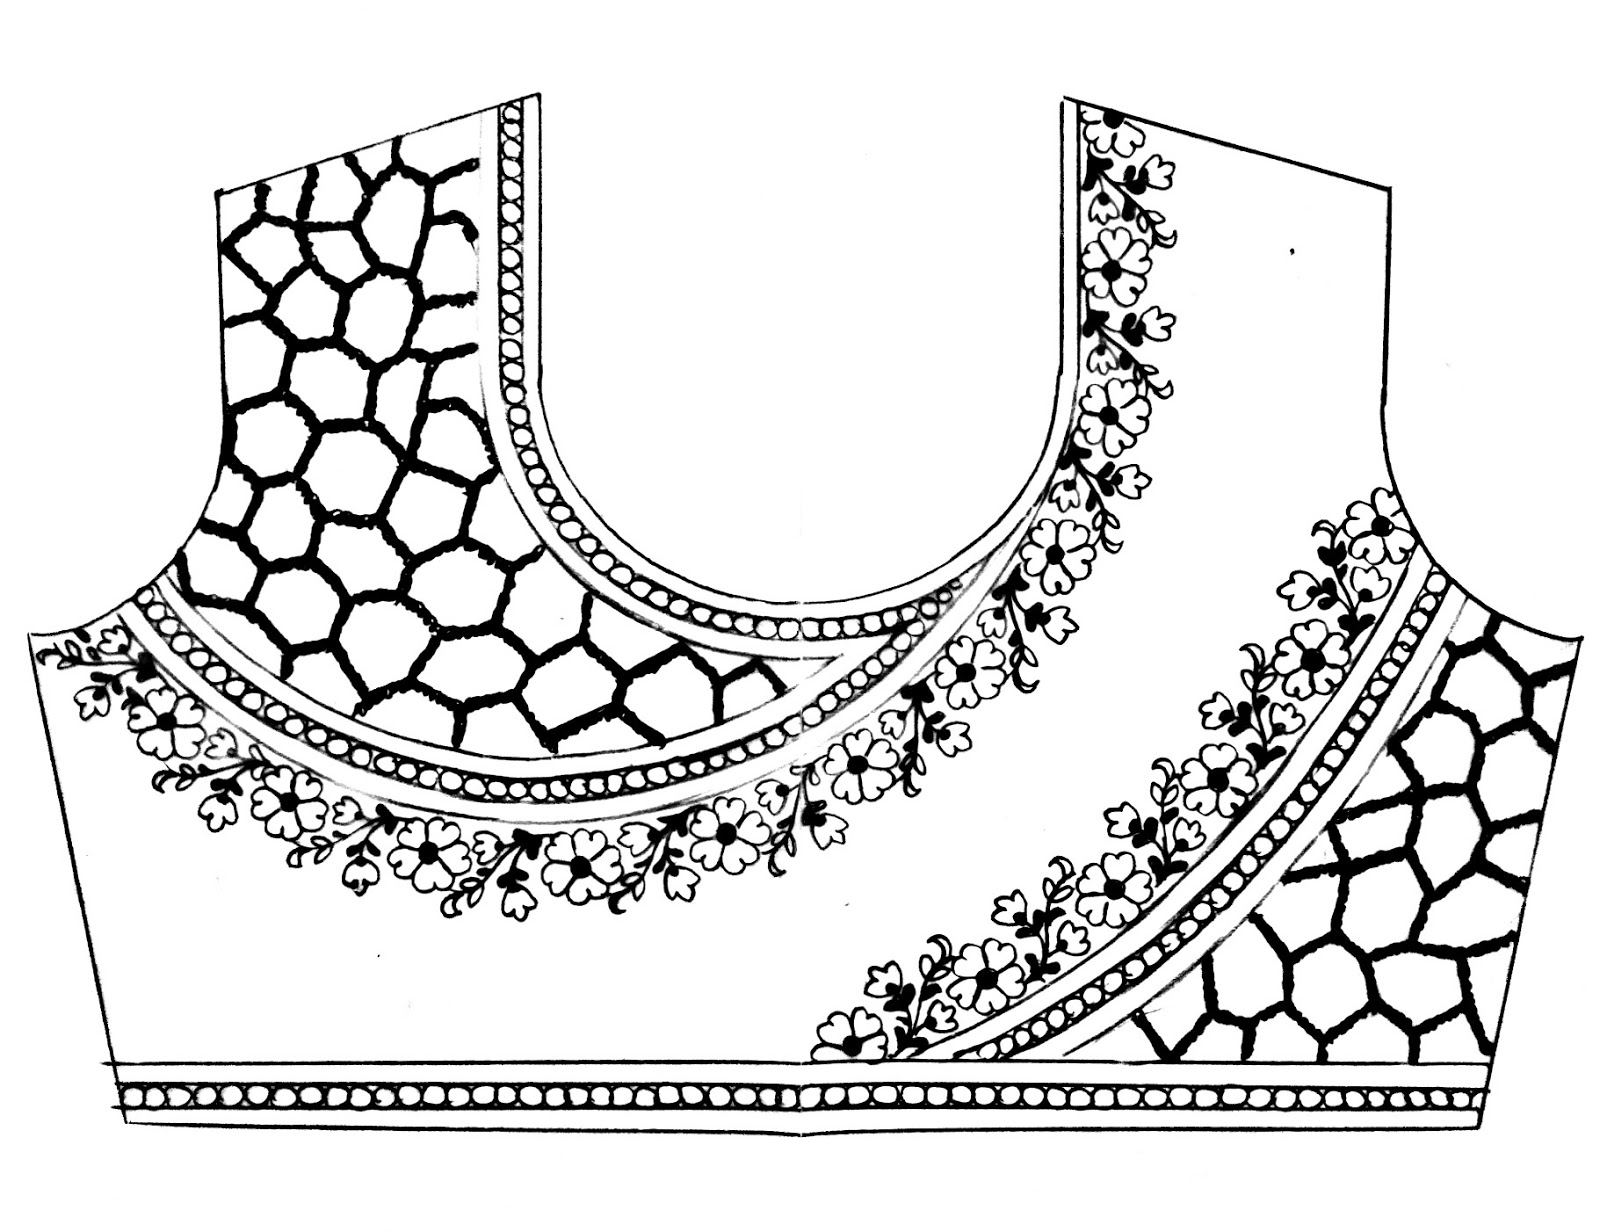 Maggam work blouse embroidery and machine emroidery design Drawing/saree blouse design sketch/free emroidery design download.